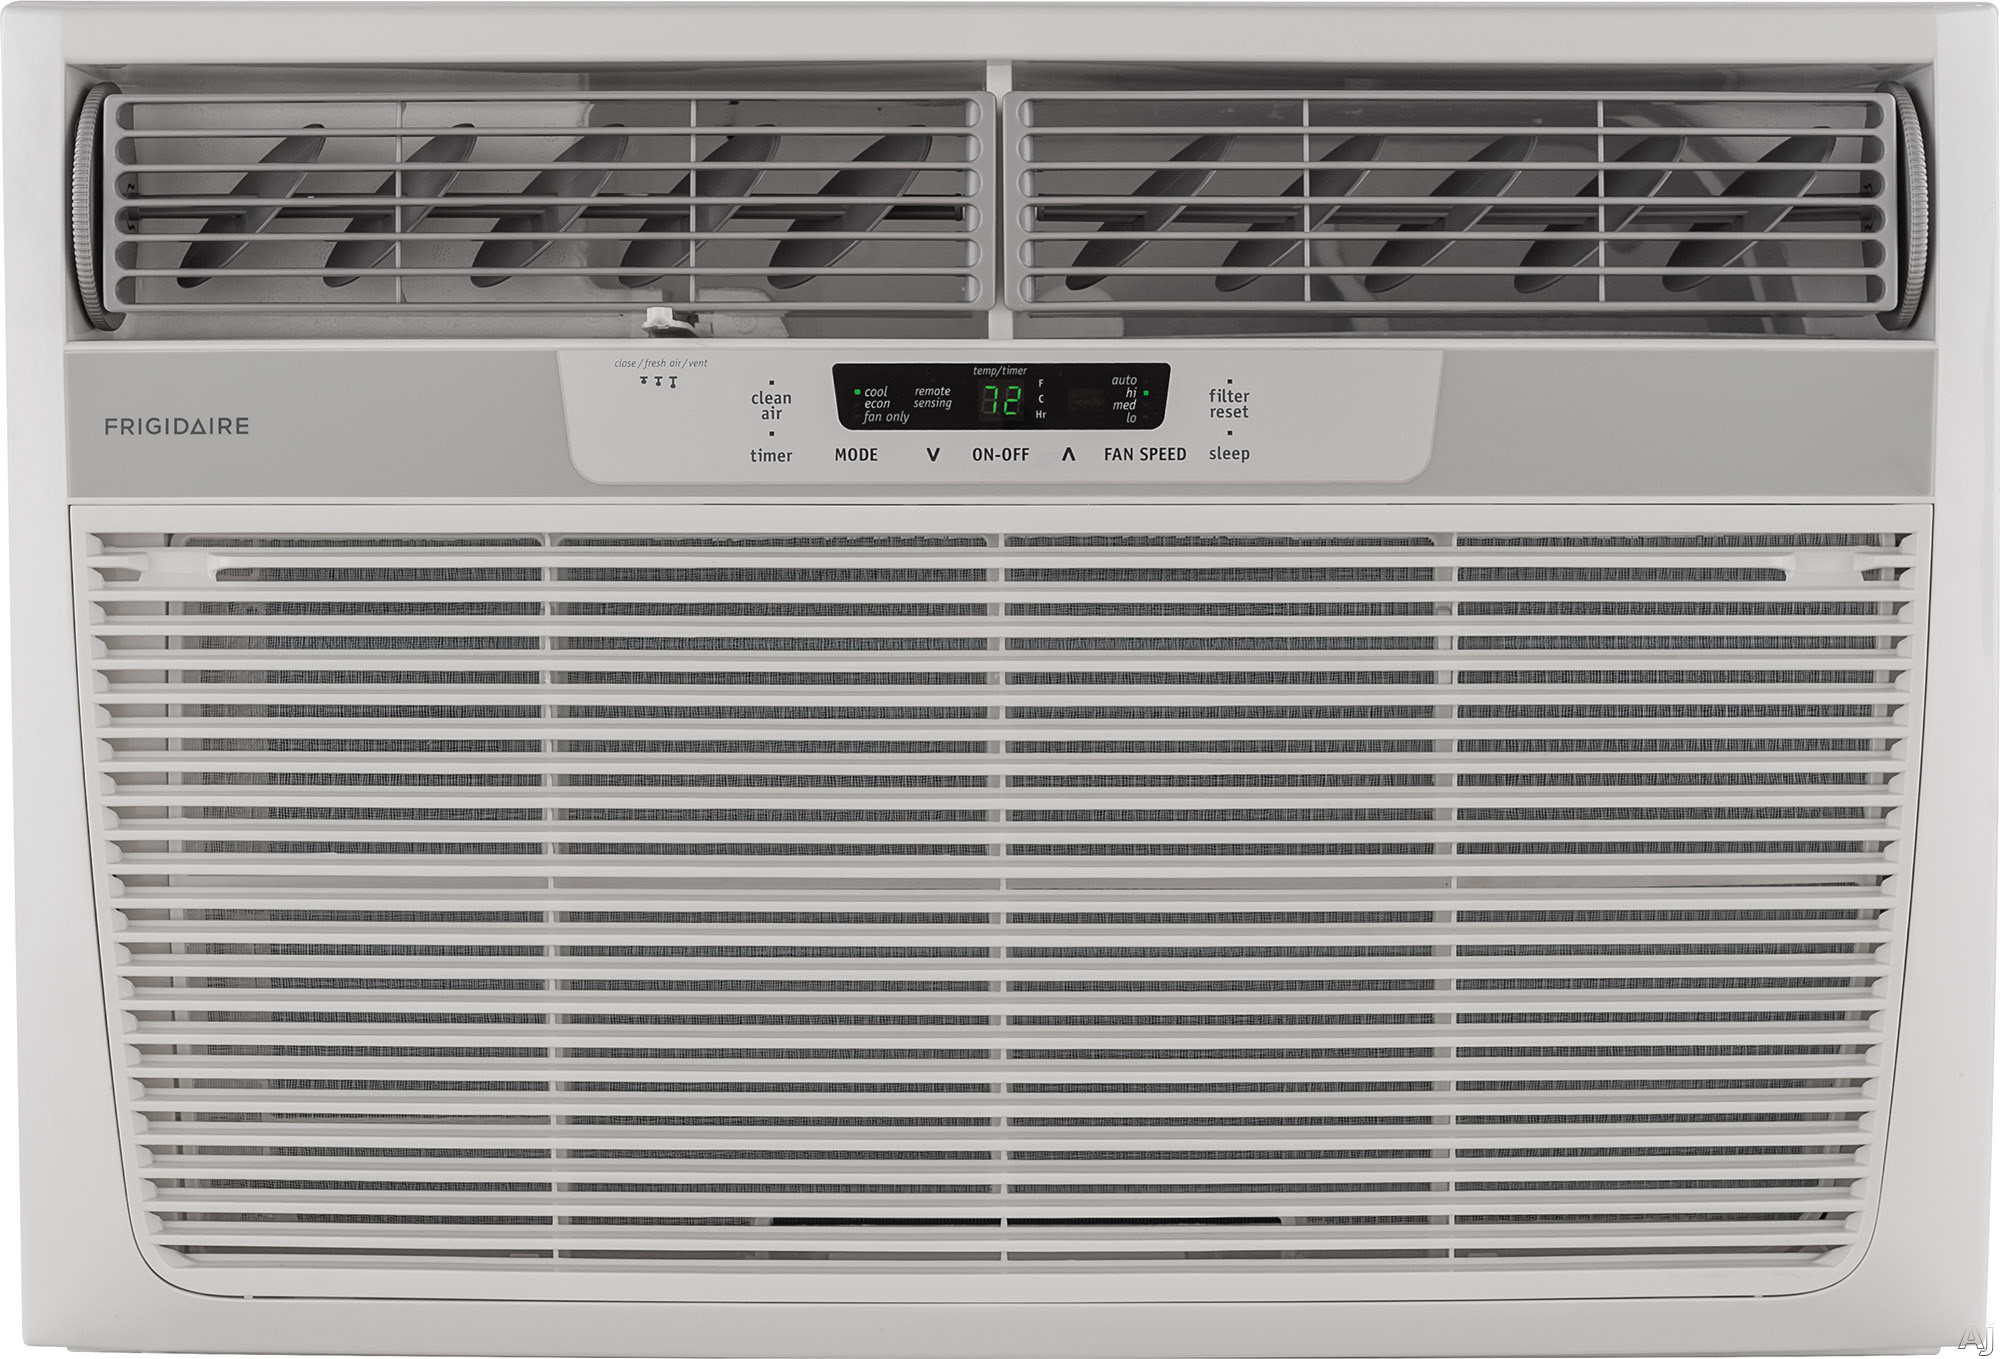 Frigidaire FFRA2822R2 28,000 BTU Room Air Conditioner with 9.0 EER, R-410A Refrigerant, 9.5 Pts/Hr Dehumidification, Clean Air Ionizer, Programmable Timer and 230/208 Volts FFRA2822R2